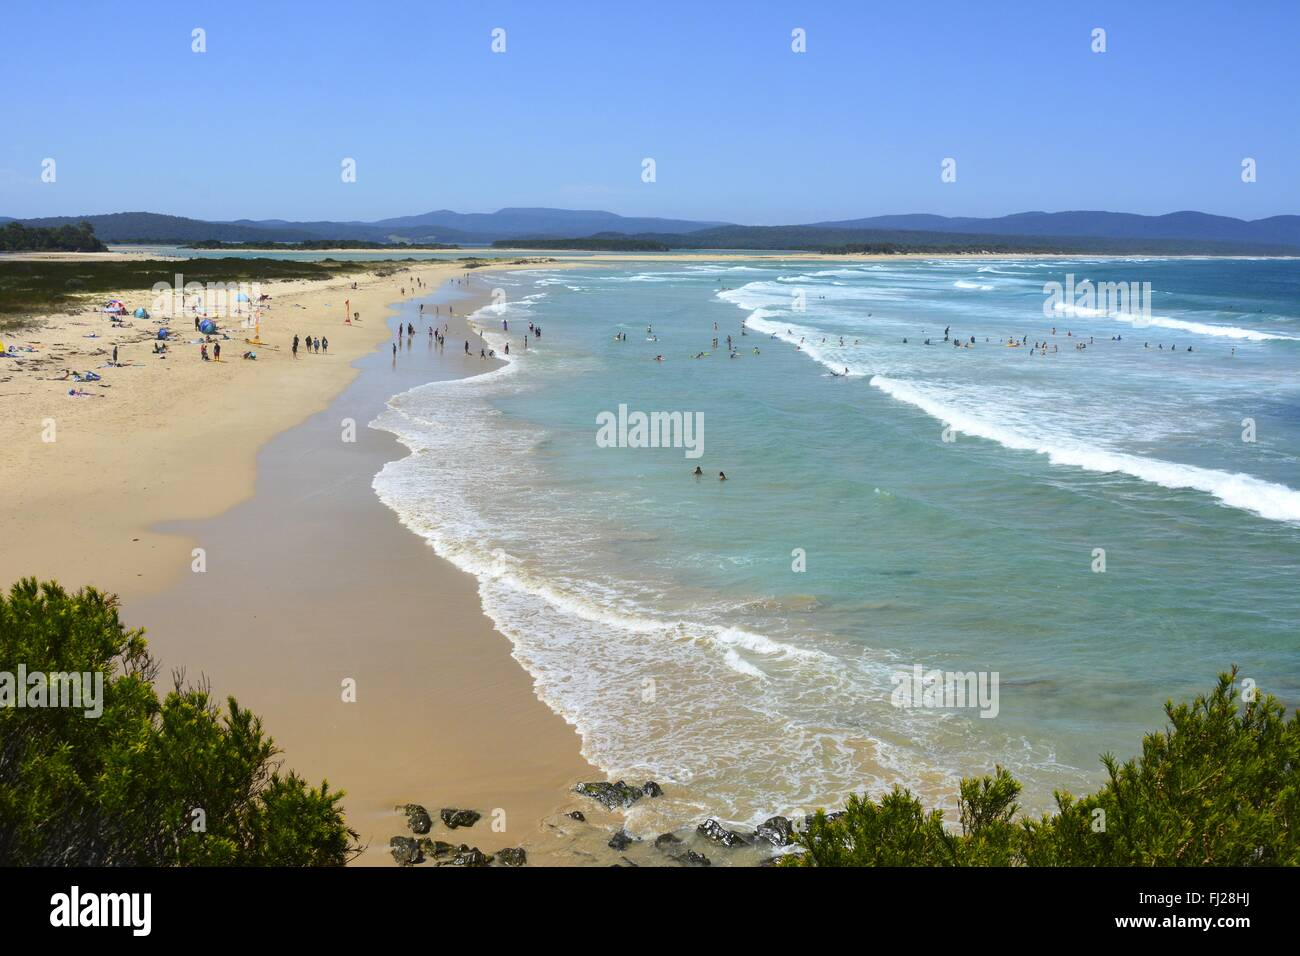 Bastion Point beach in Mallacoota, VIC. - Stock Image